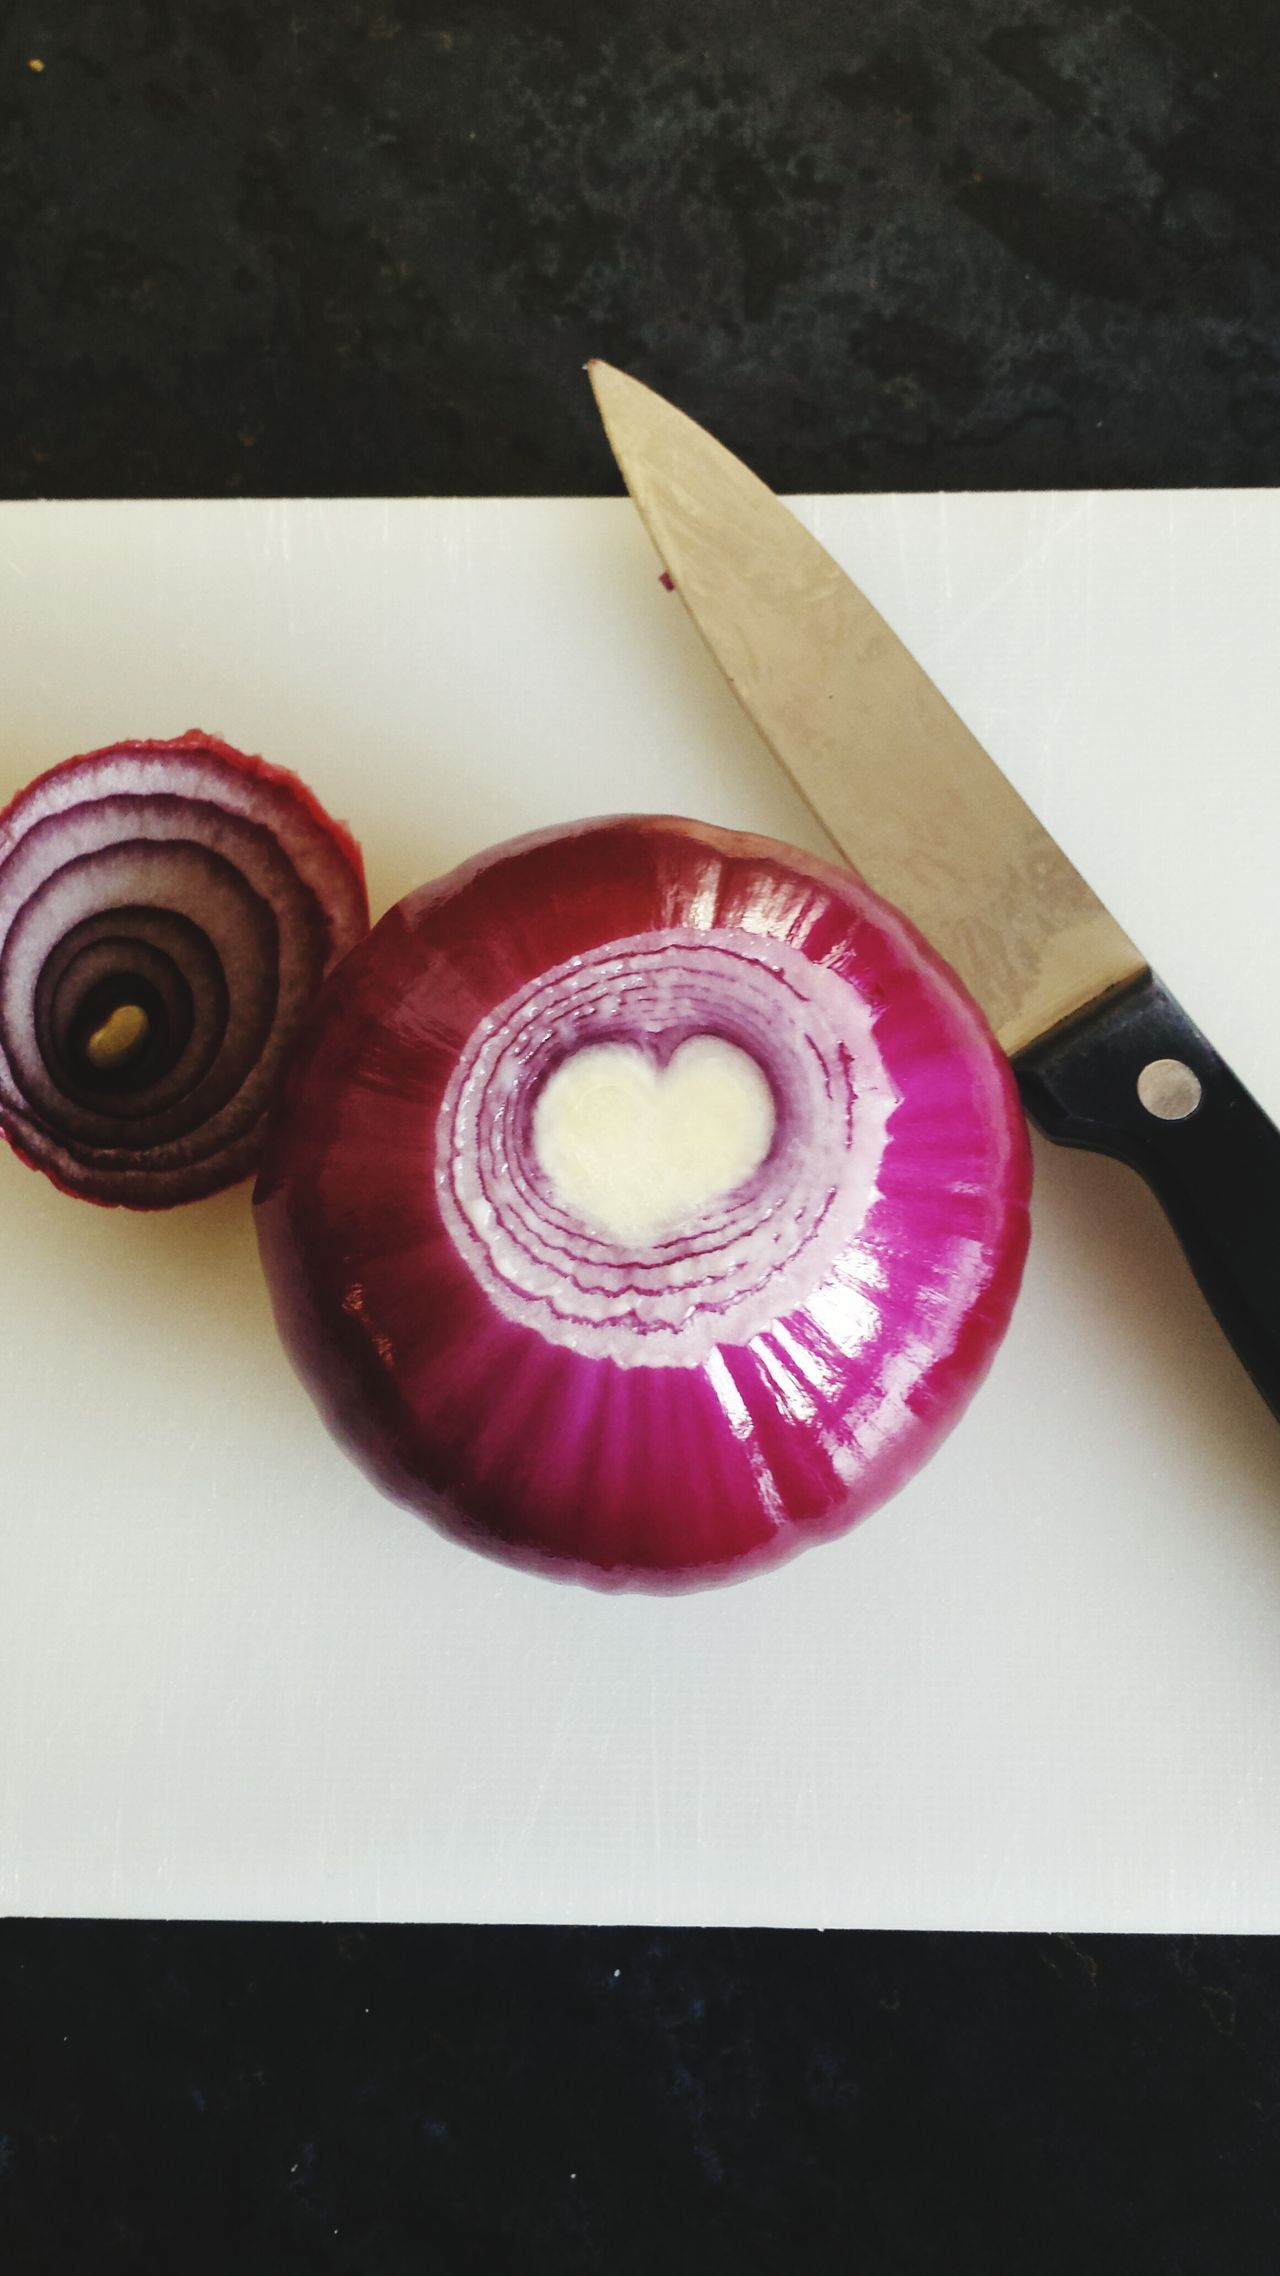 Heart image inside pink onion Pink Color Food Heart Shape Heart Food And Drink Onion Red Onion Foodie Heart Shapes In Nature Heart Shaped Food